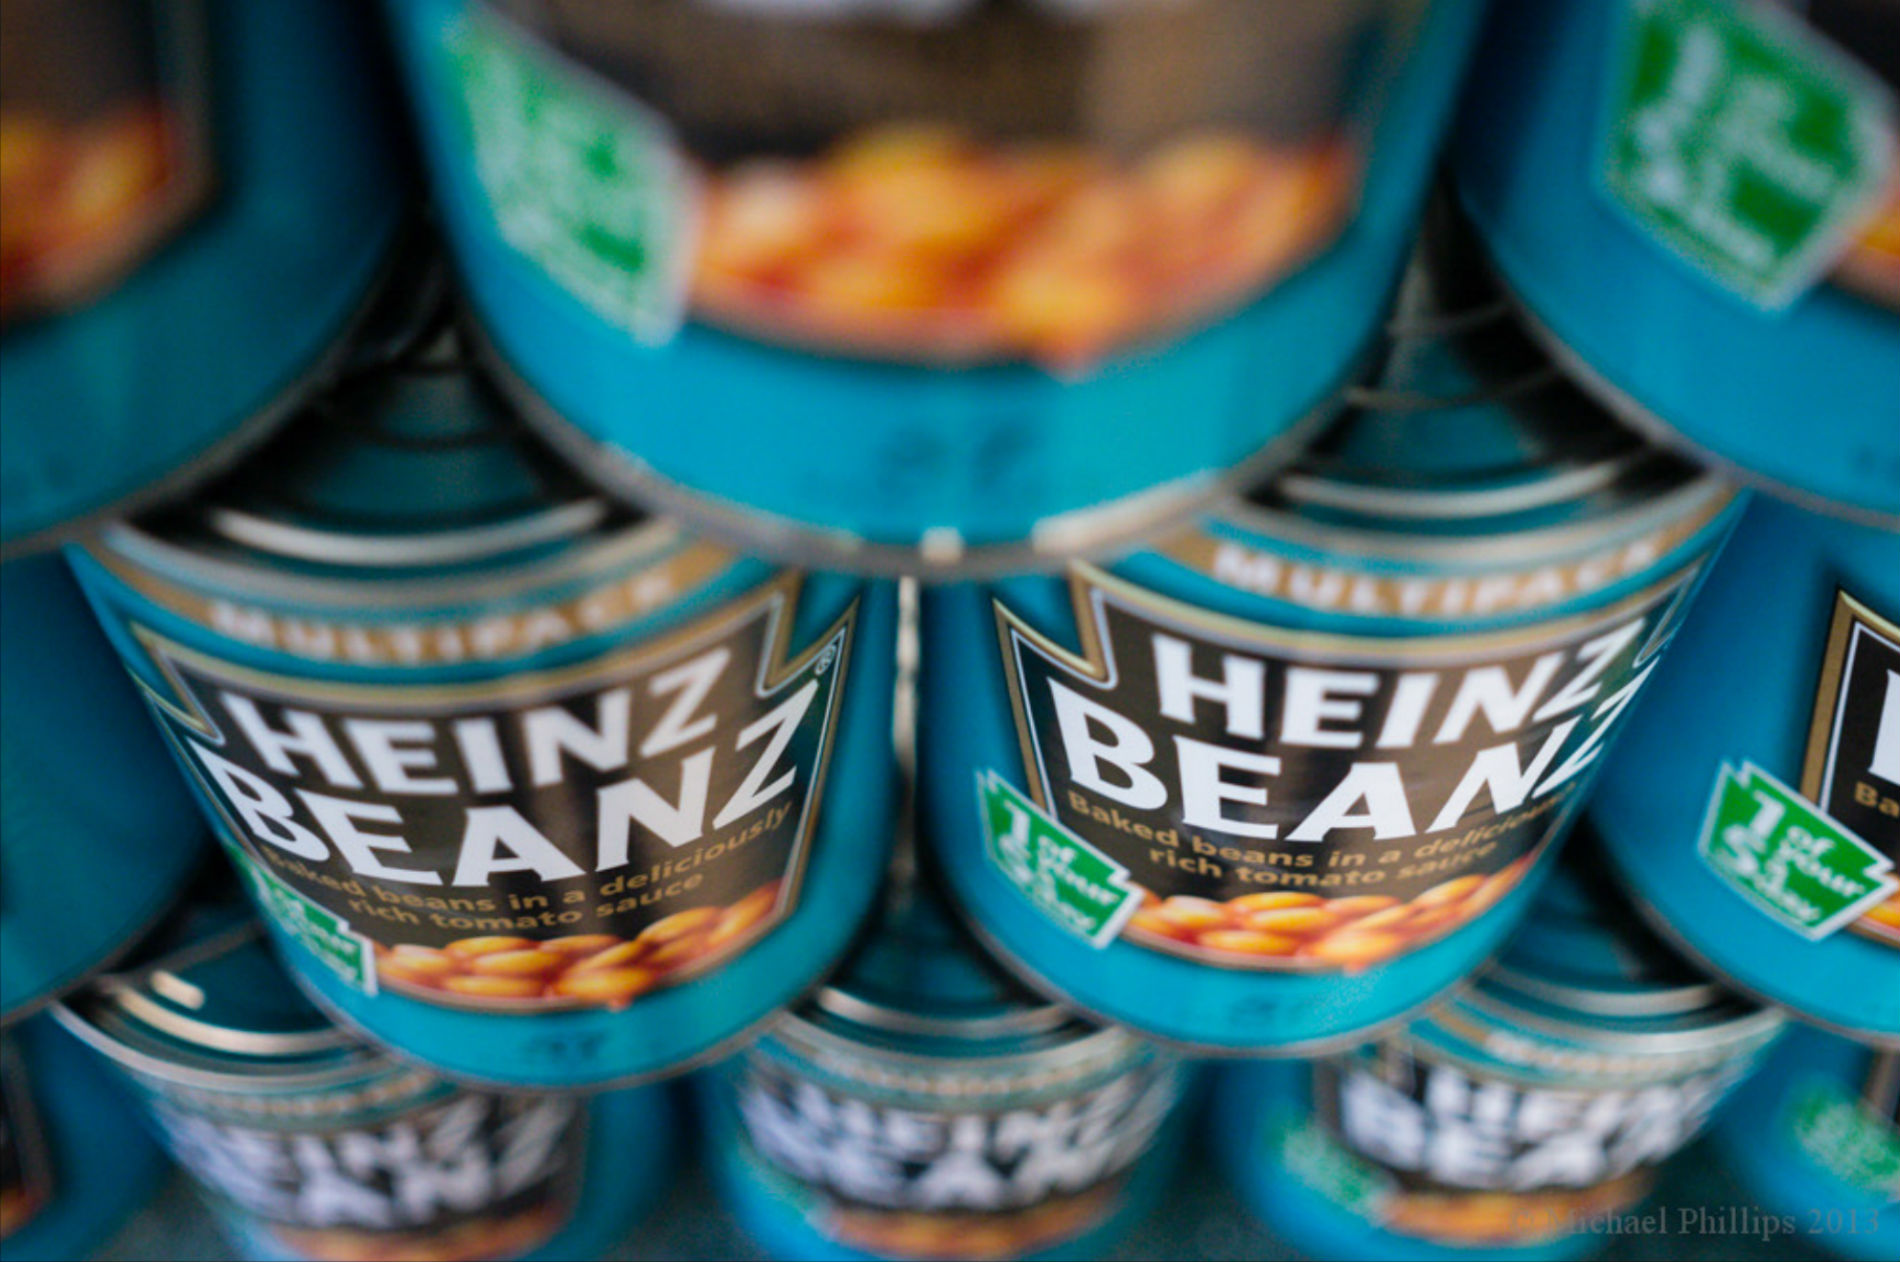 Baked bean cans